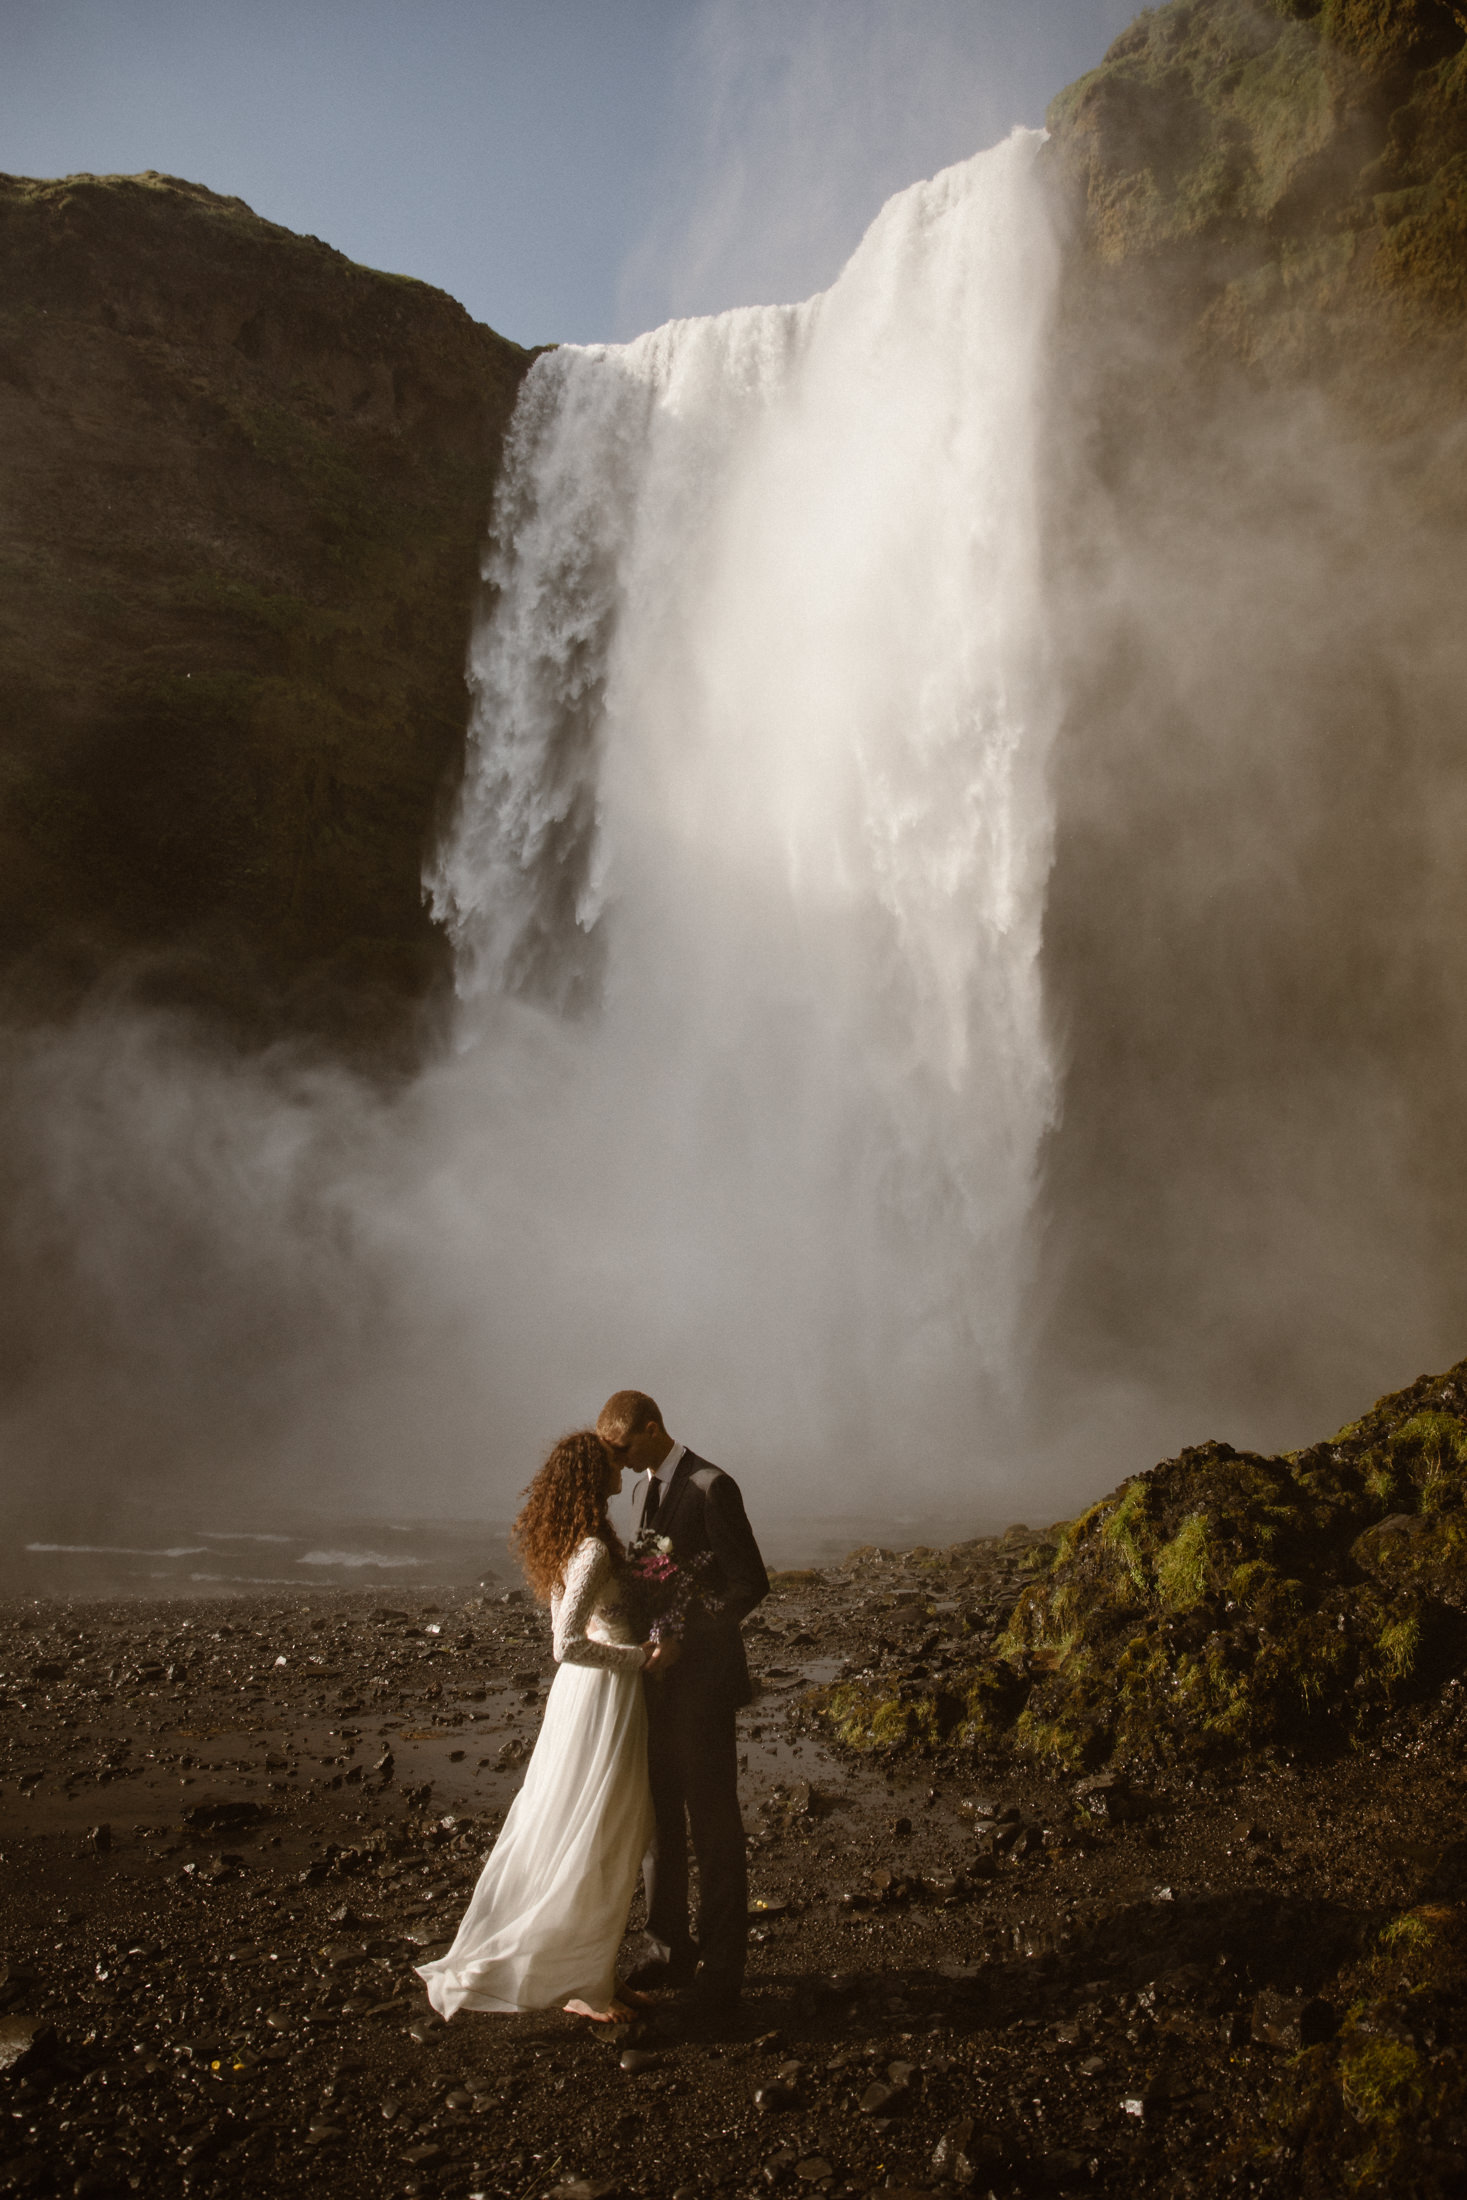 A couple decided to elope by a waterfall in Iceland for their wedding. Skogafoss Waterfall in Southern Iceland is the dreamiest place to get married.